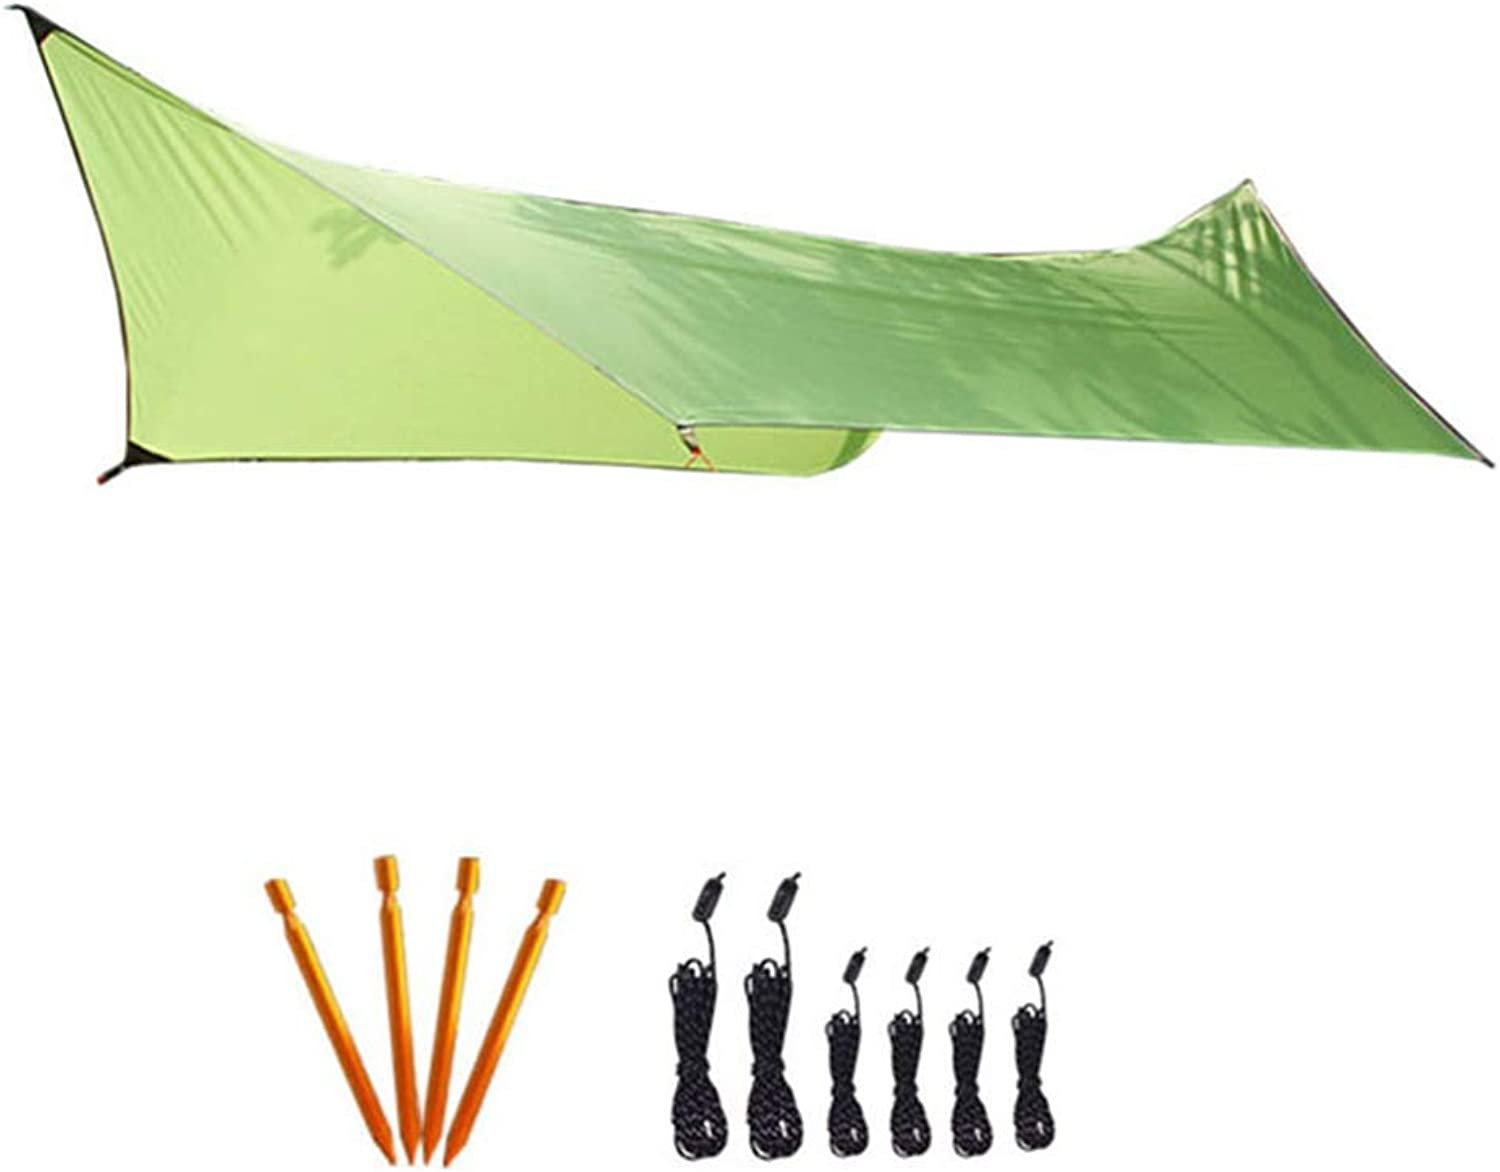 Family Beach Sunshade, Outdoors Tall Canopy, Beach Shelter, Lightweight Sun Shade Tent, 210T Polyester Cloth, Suitable for Camping, Hiking, Fishing